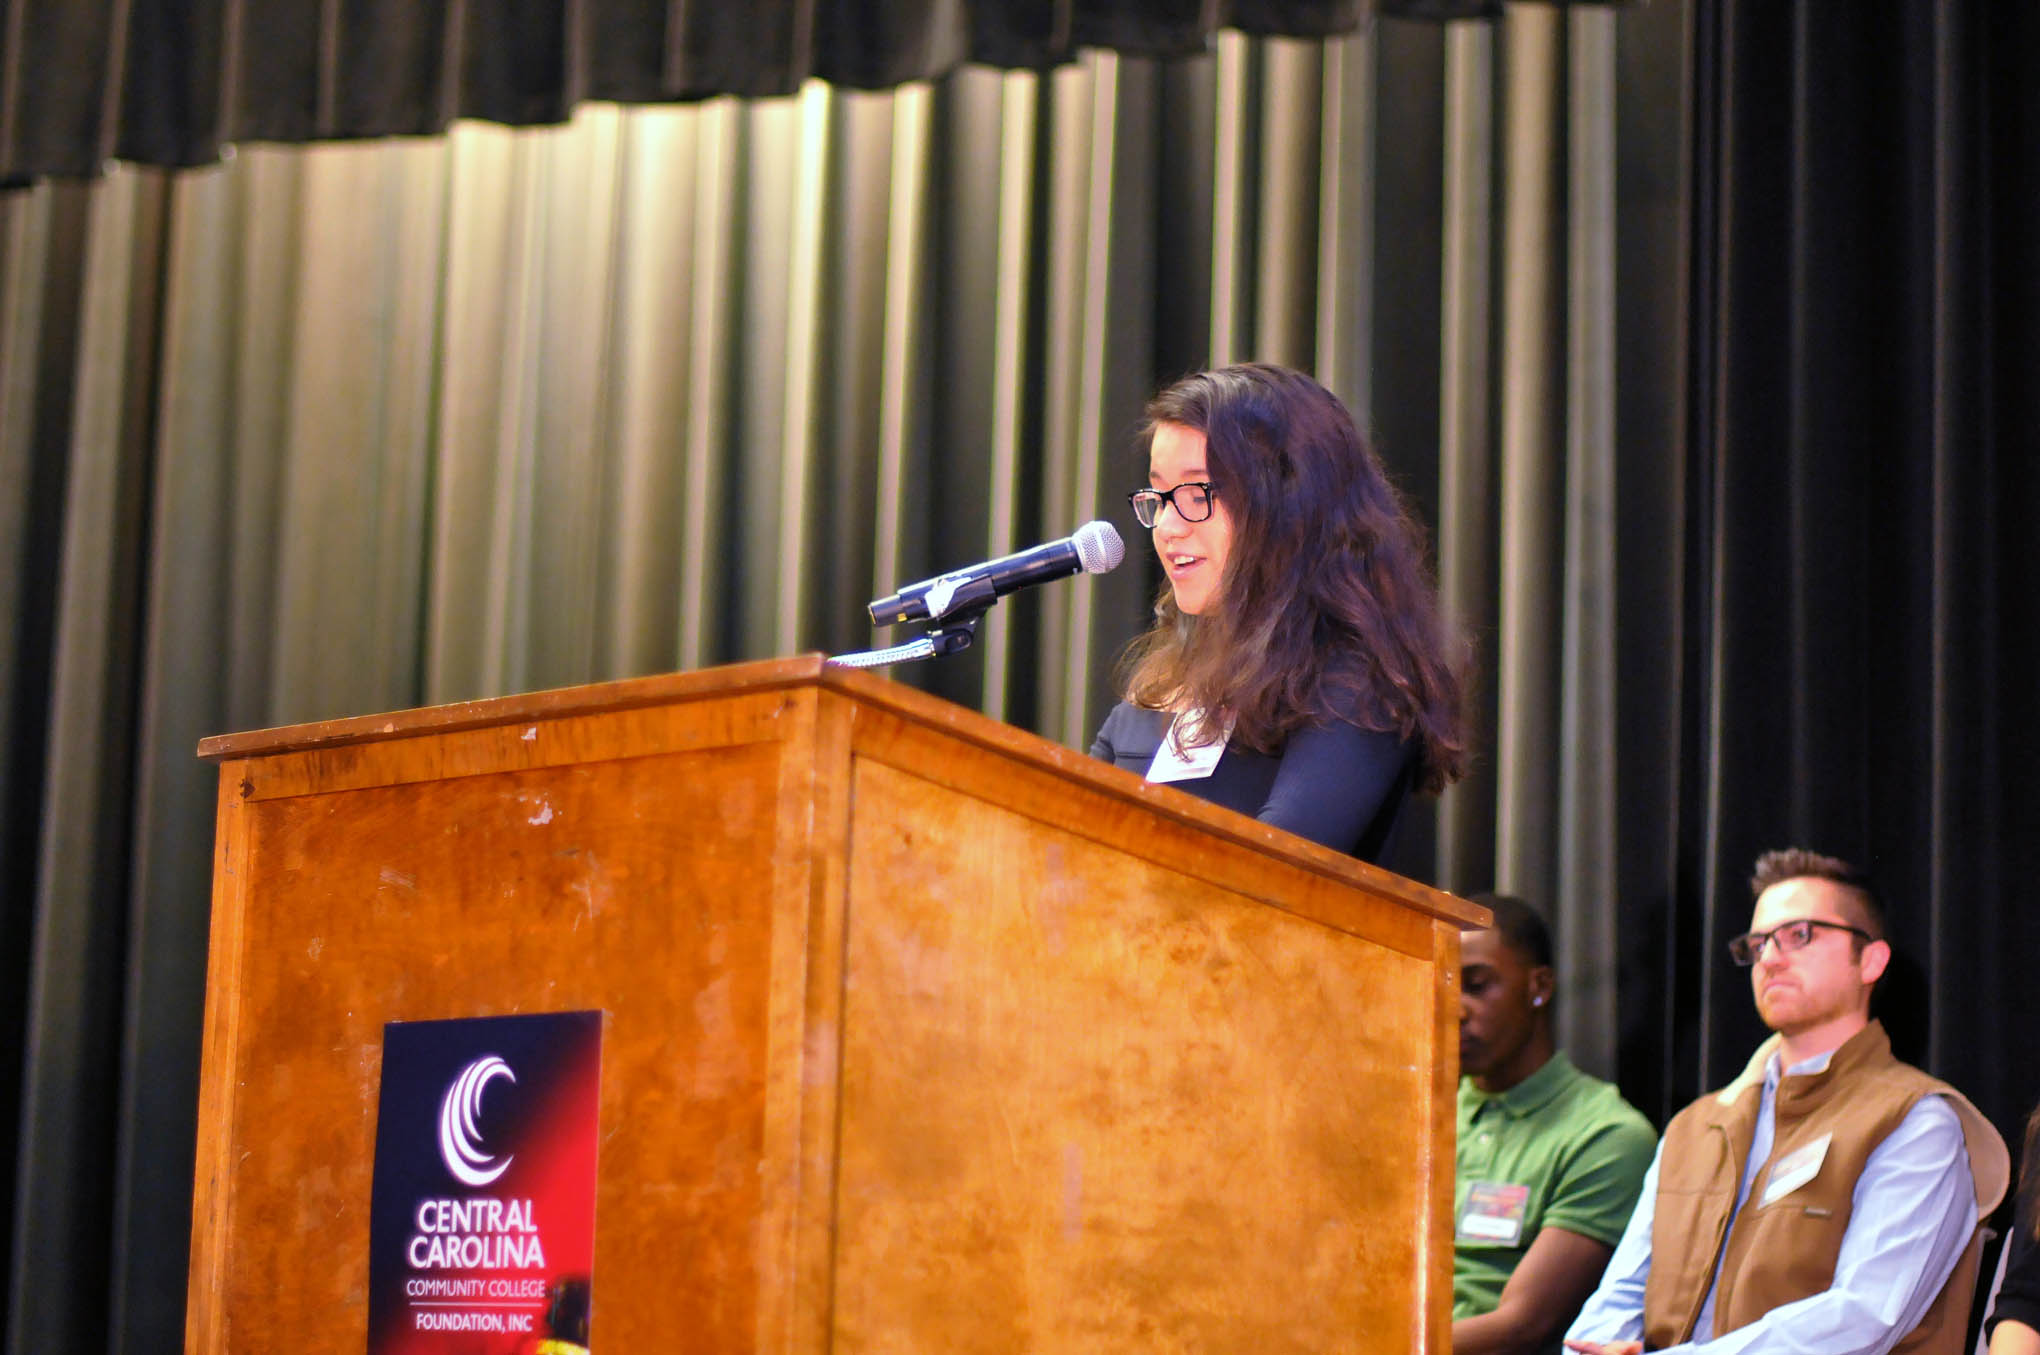 Click to enlarge,  Jacqueline Aguirre-Delgado was among the scholarship recipient speakers at the Central Carolina Community College Foundation Scholarship Luncheon on Wednesday, Nov. 20, at the Dennis A. Wicker Civic & Conference Center.